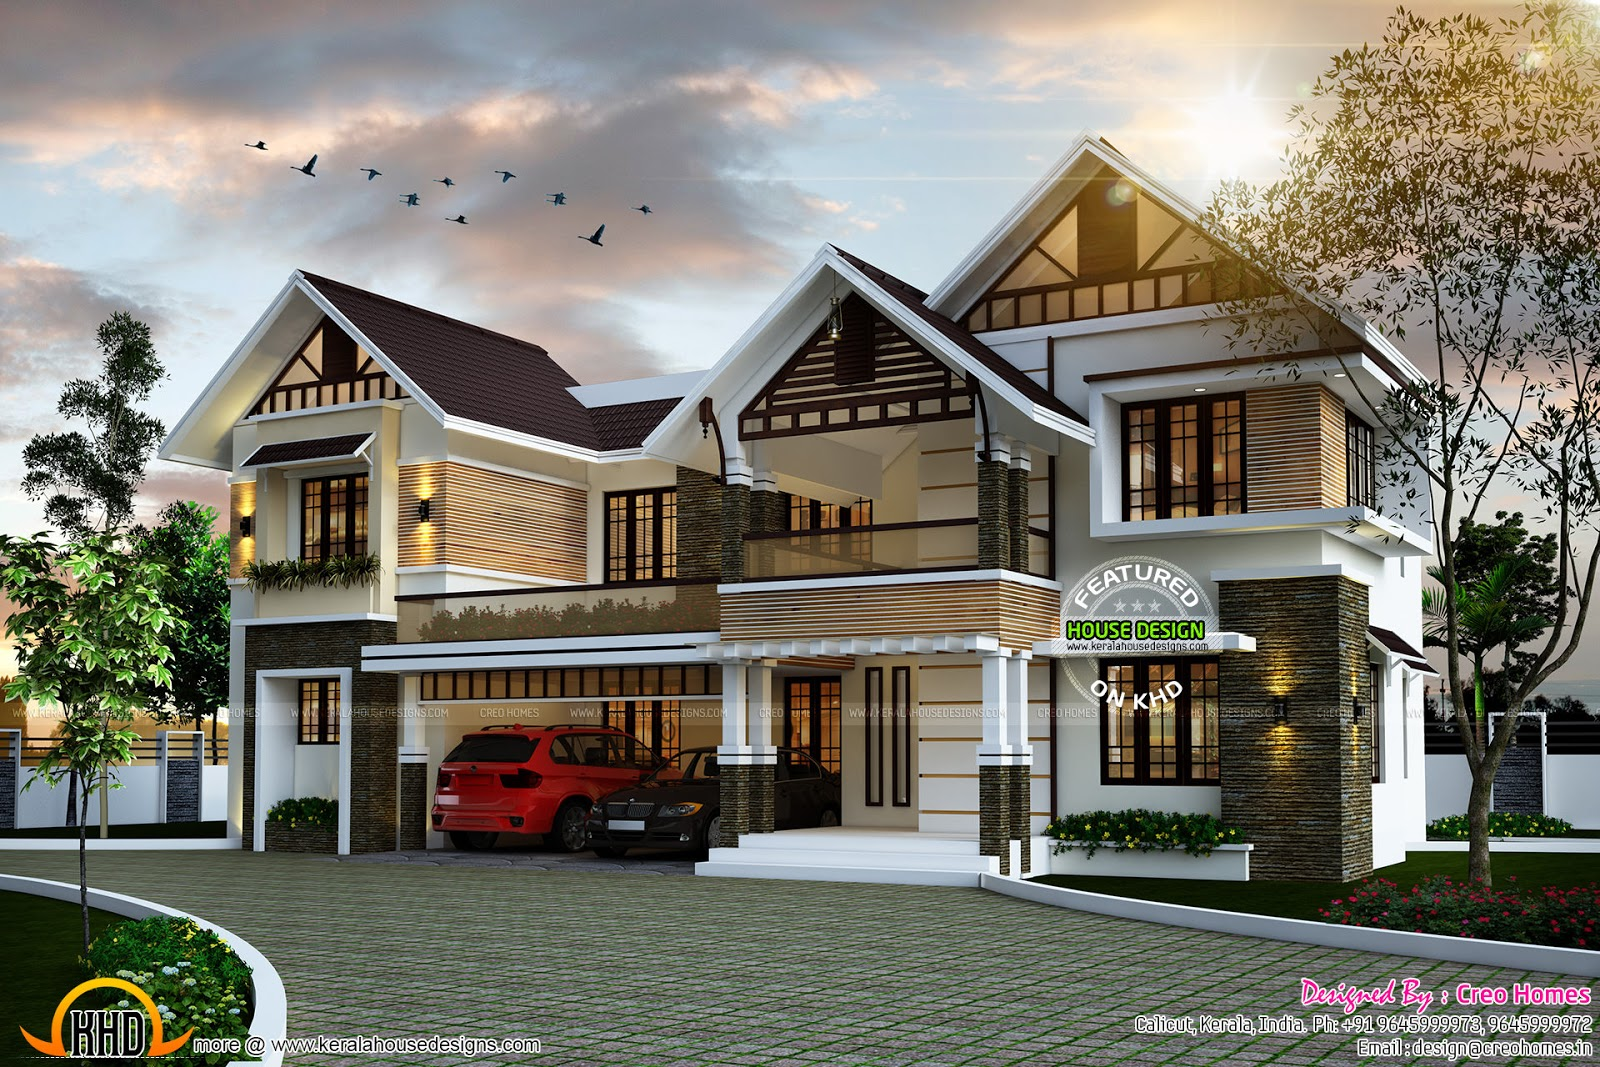 One Square Meter In Square Feet Sloping Roof Cute Home Plan Kerala Home Design And Floor